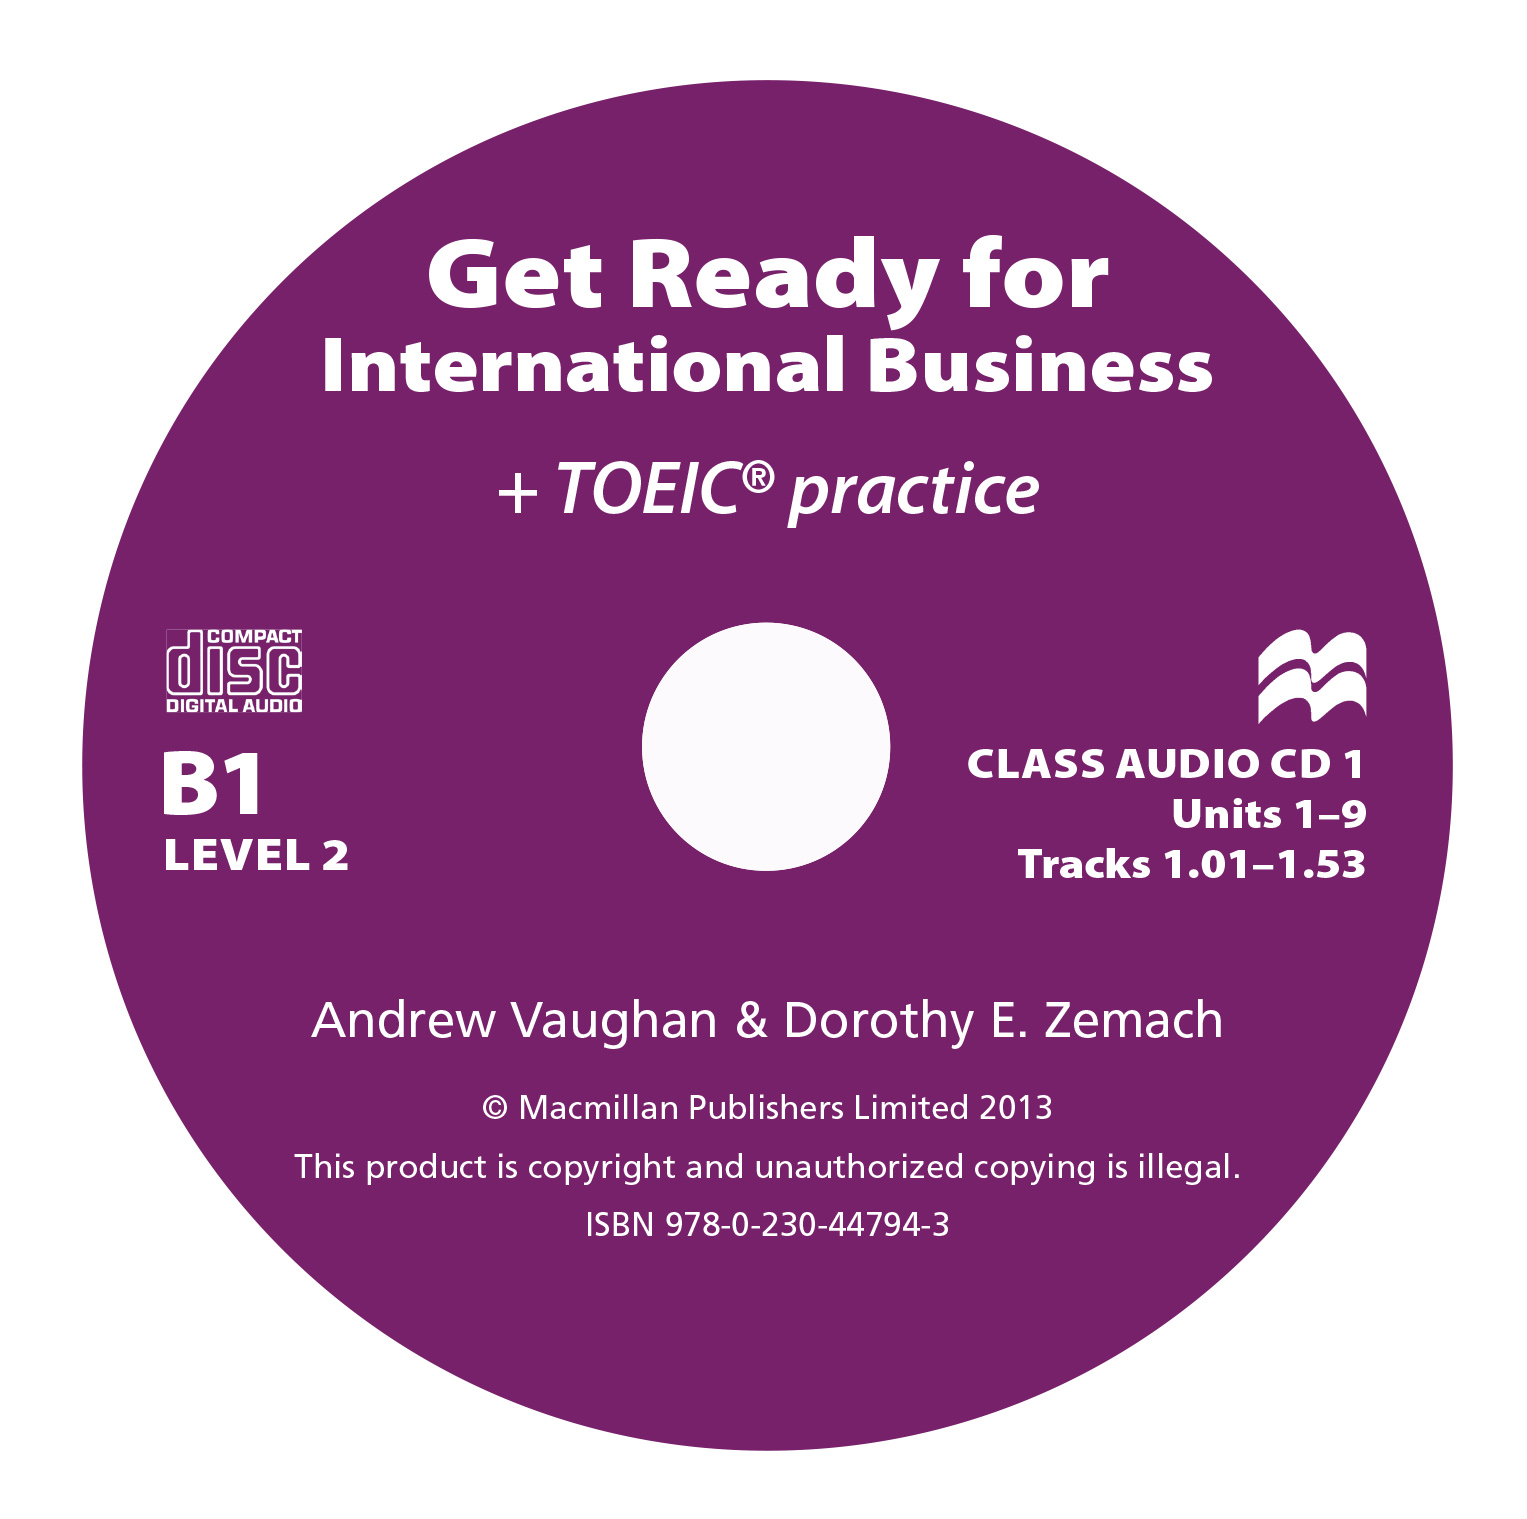 Get Ready For International Business 2 Class Audio CD TOEIC